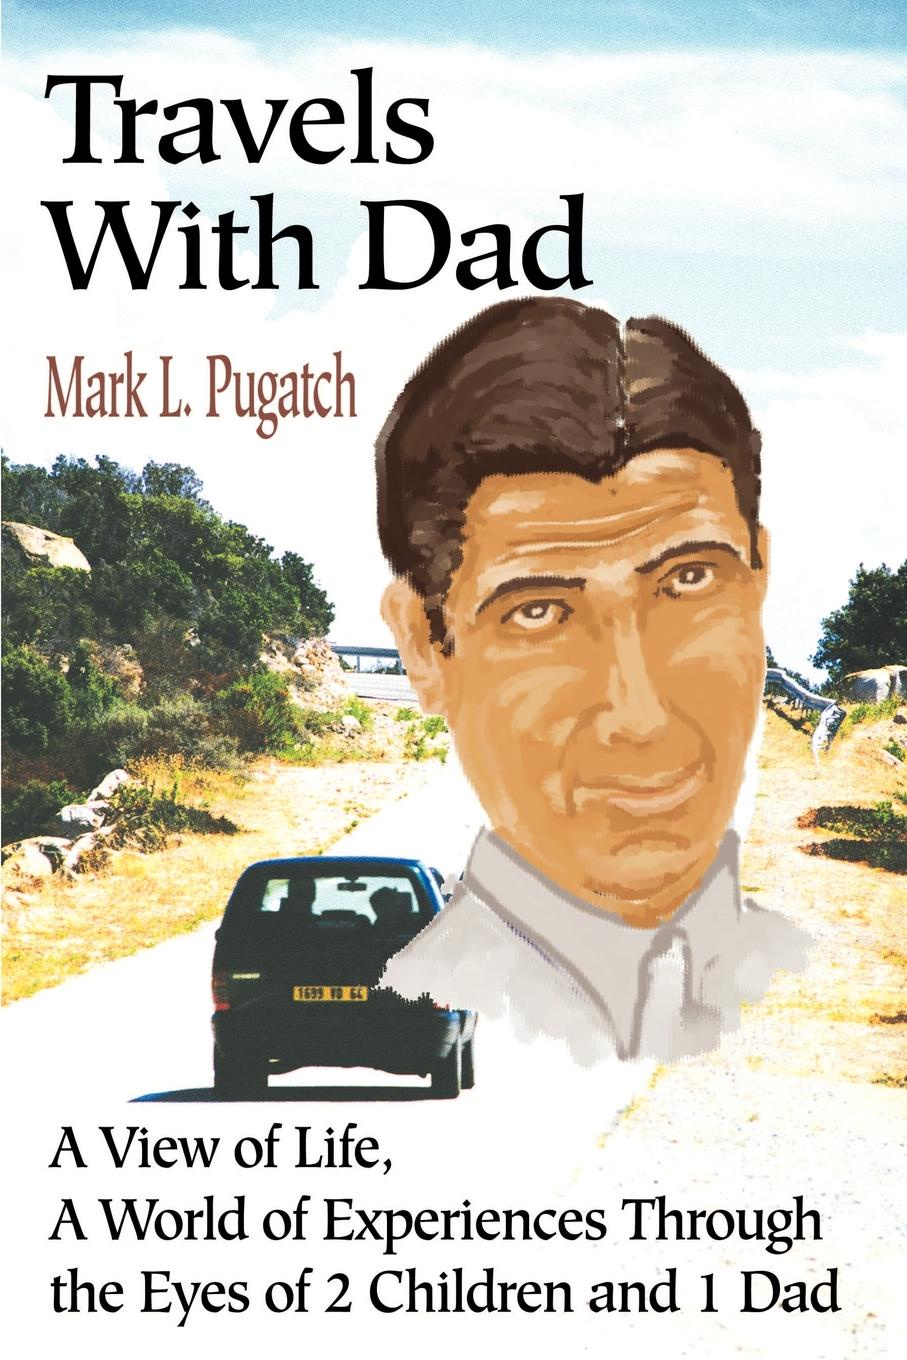 Mark L. Pugatch Travels with Dad. A View of Life, a World of Experiences Through the Eyes of 2 Children and 1 Dad a room with a view